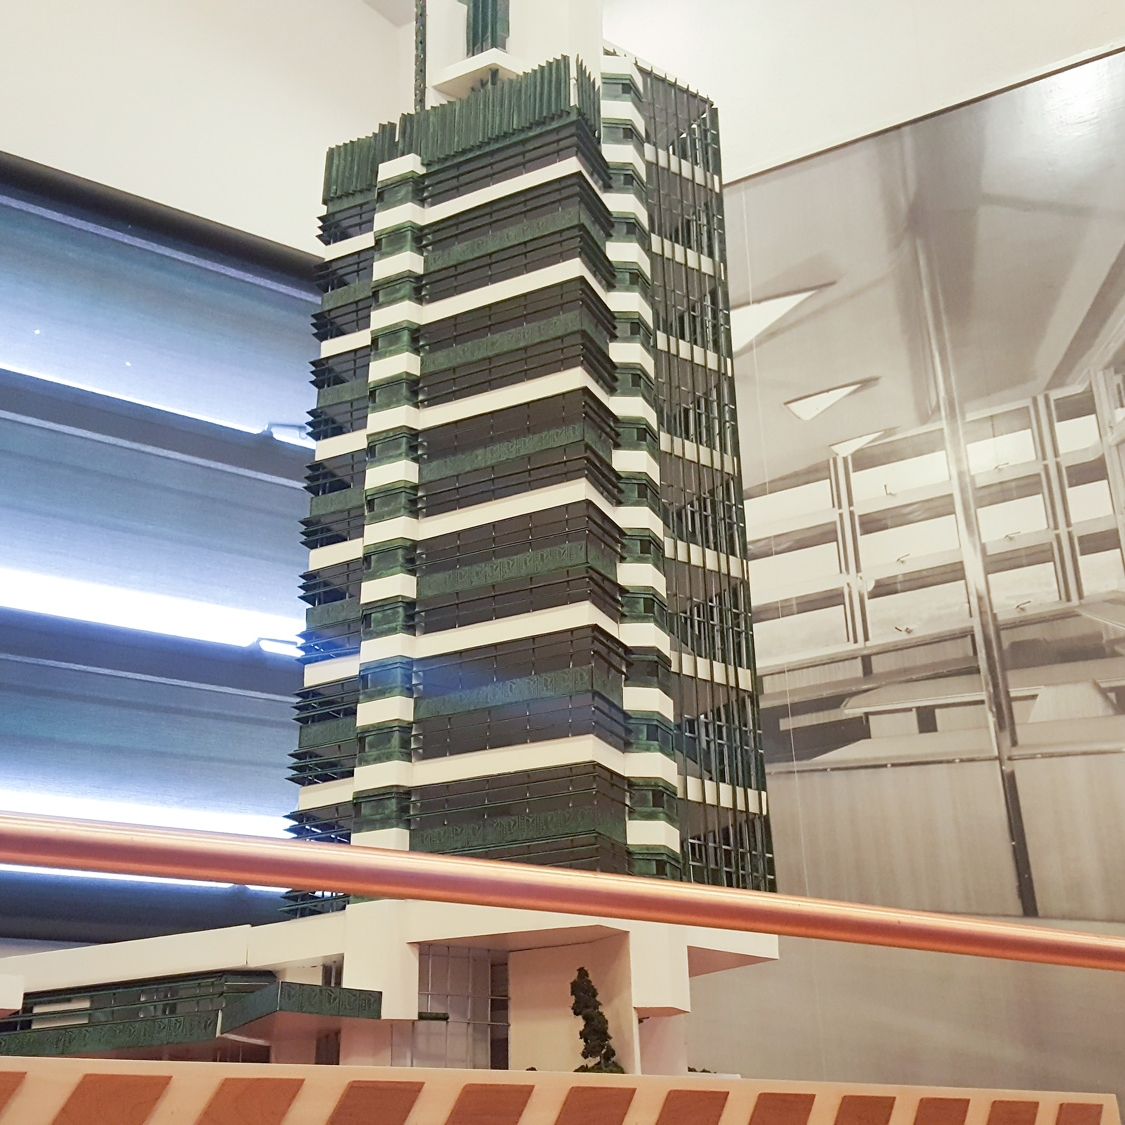 Model of the Price Tower